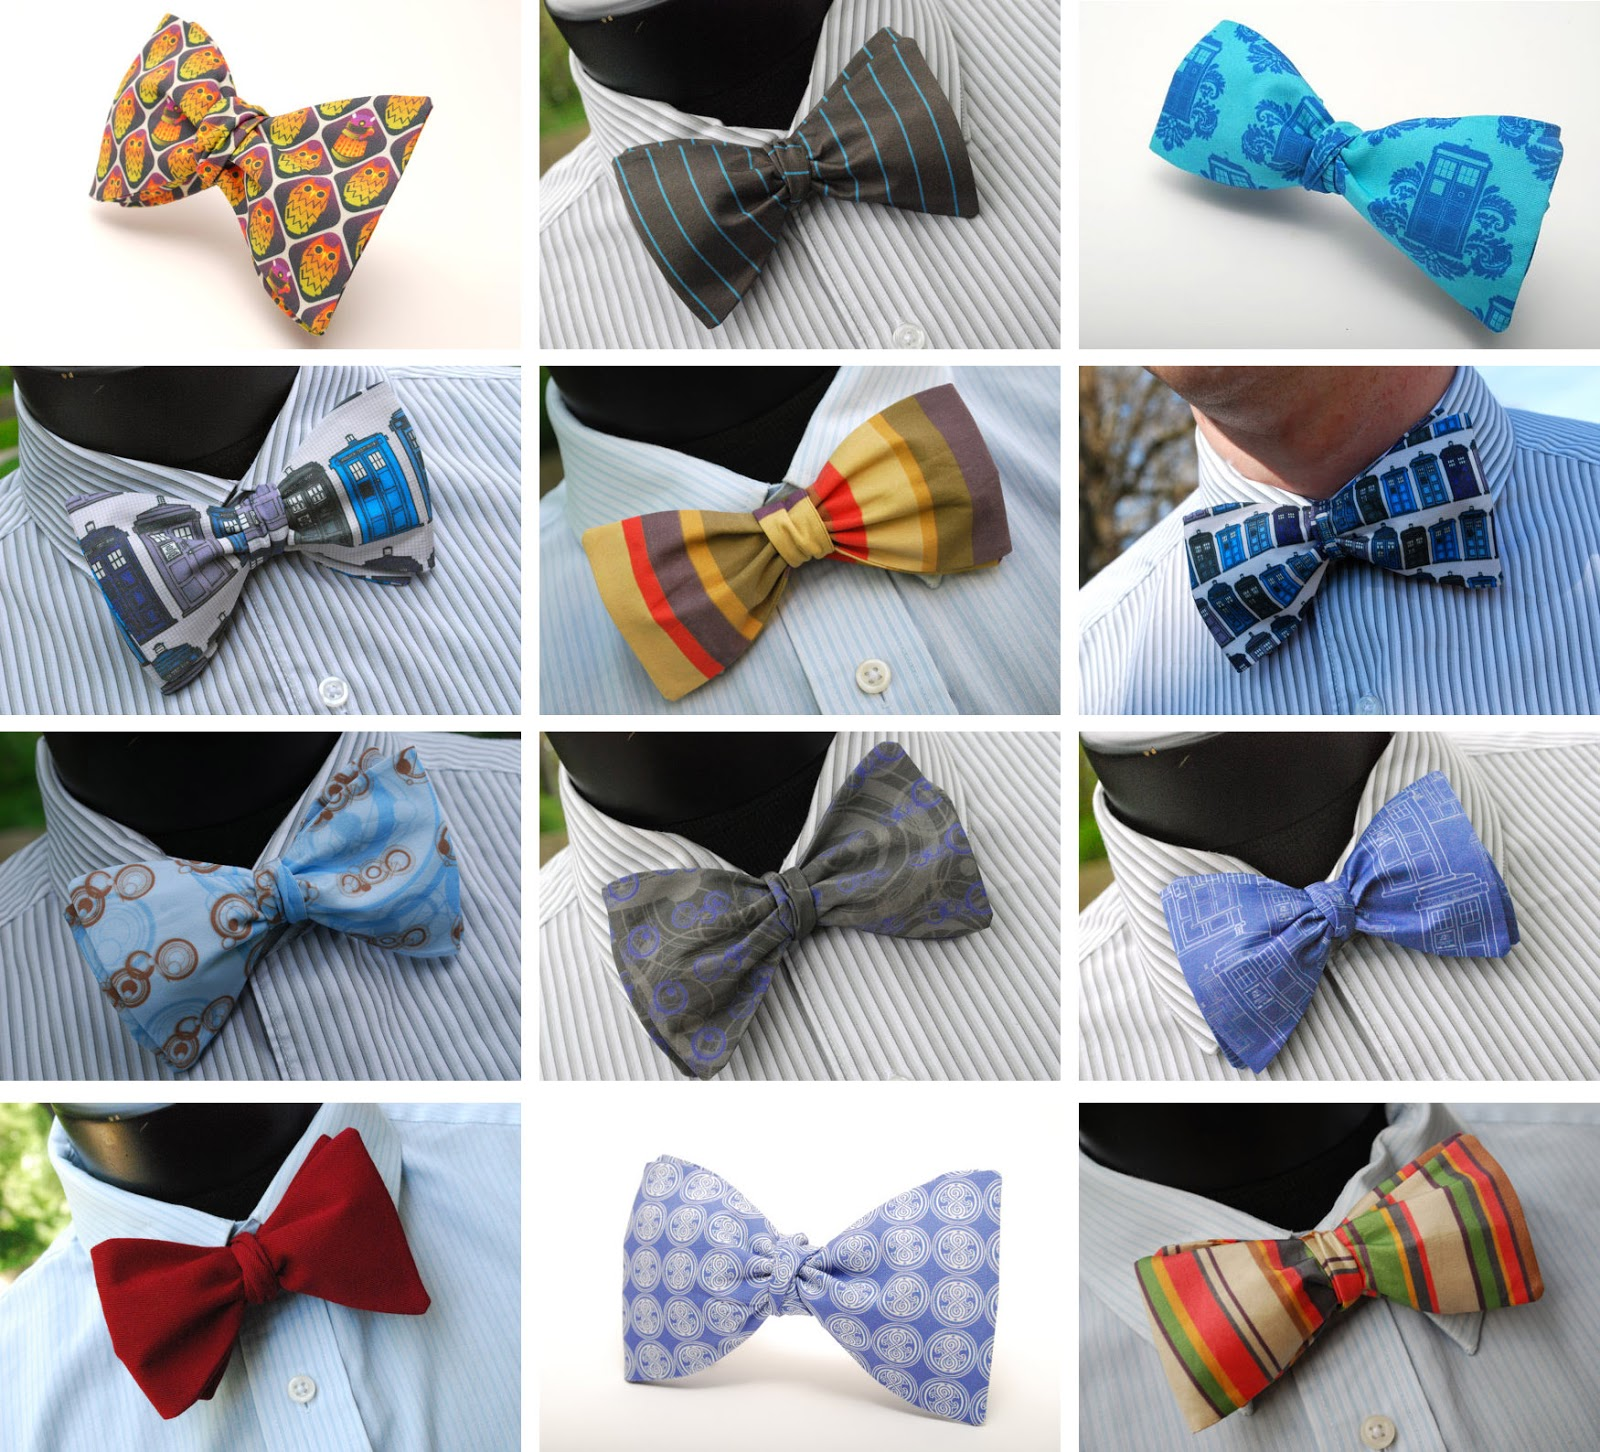 Making My 11th Doctor Costume: Bow ties are getting cooler!